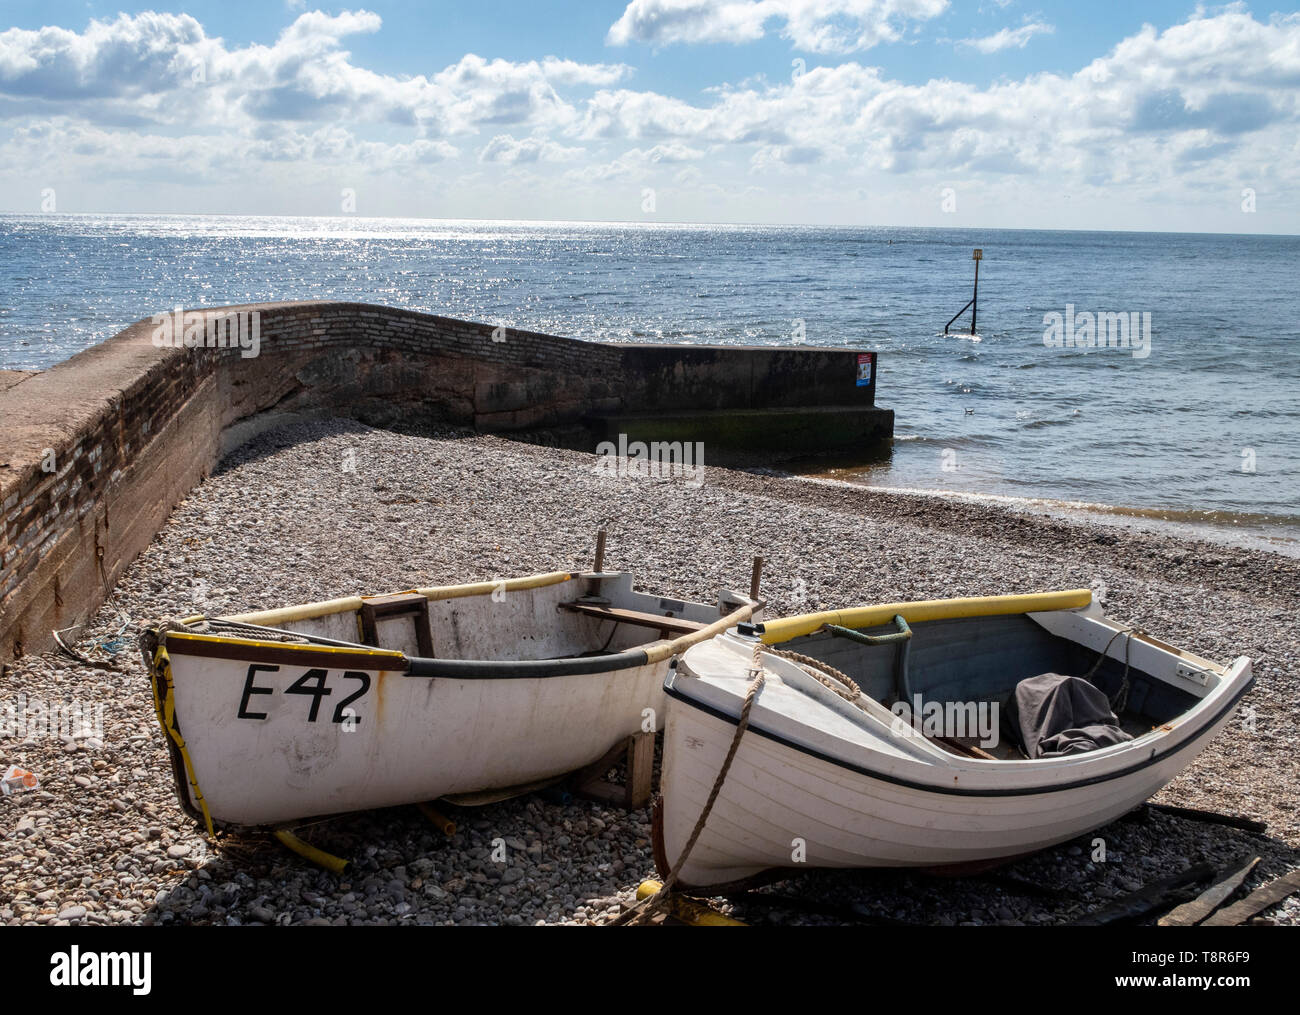 Fishing boats pulled up onto the shore beside a sea wall at Sidmouth, Devon, UK Stock Photo